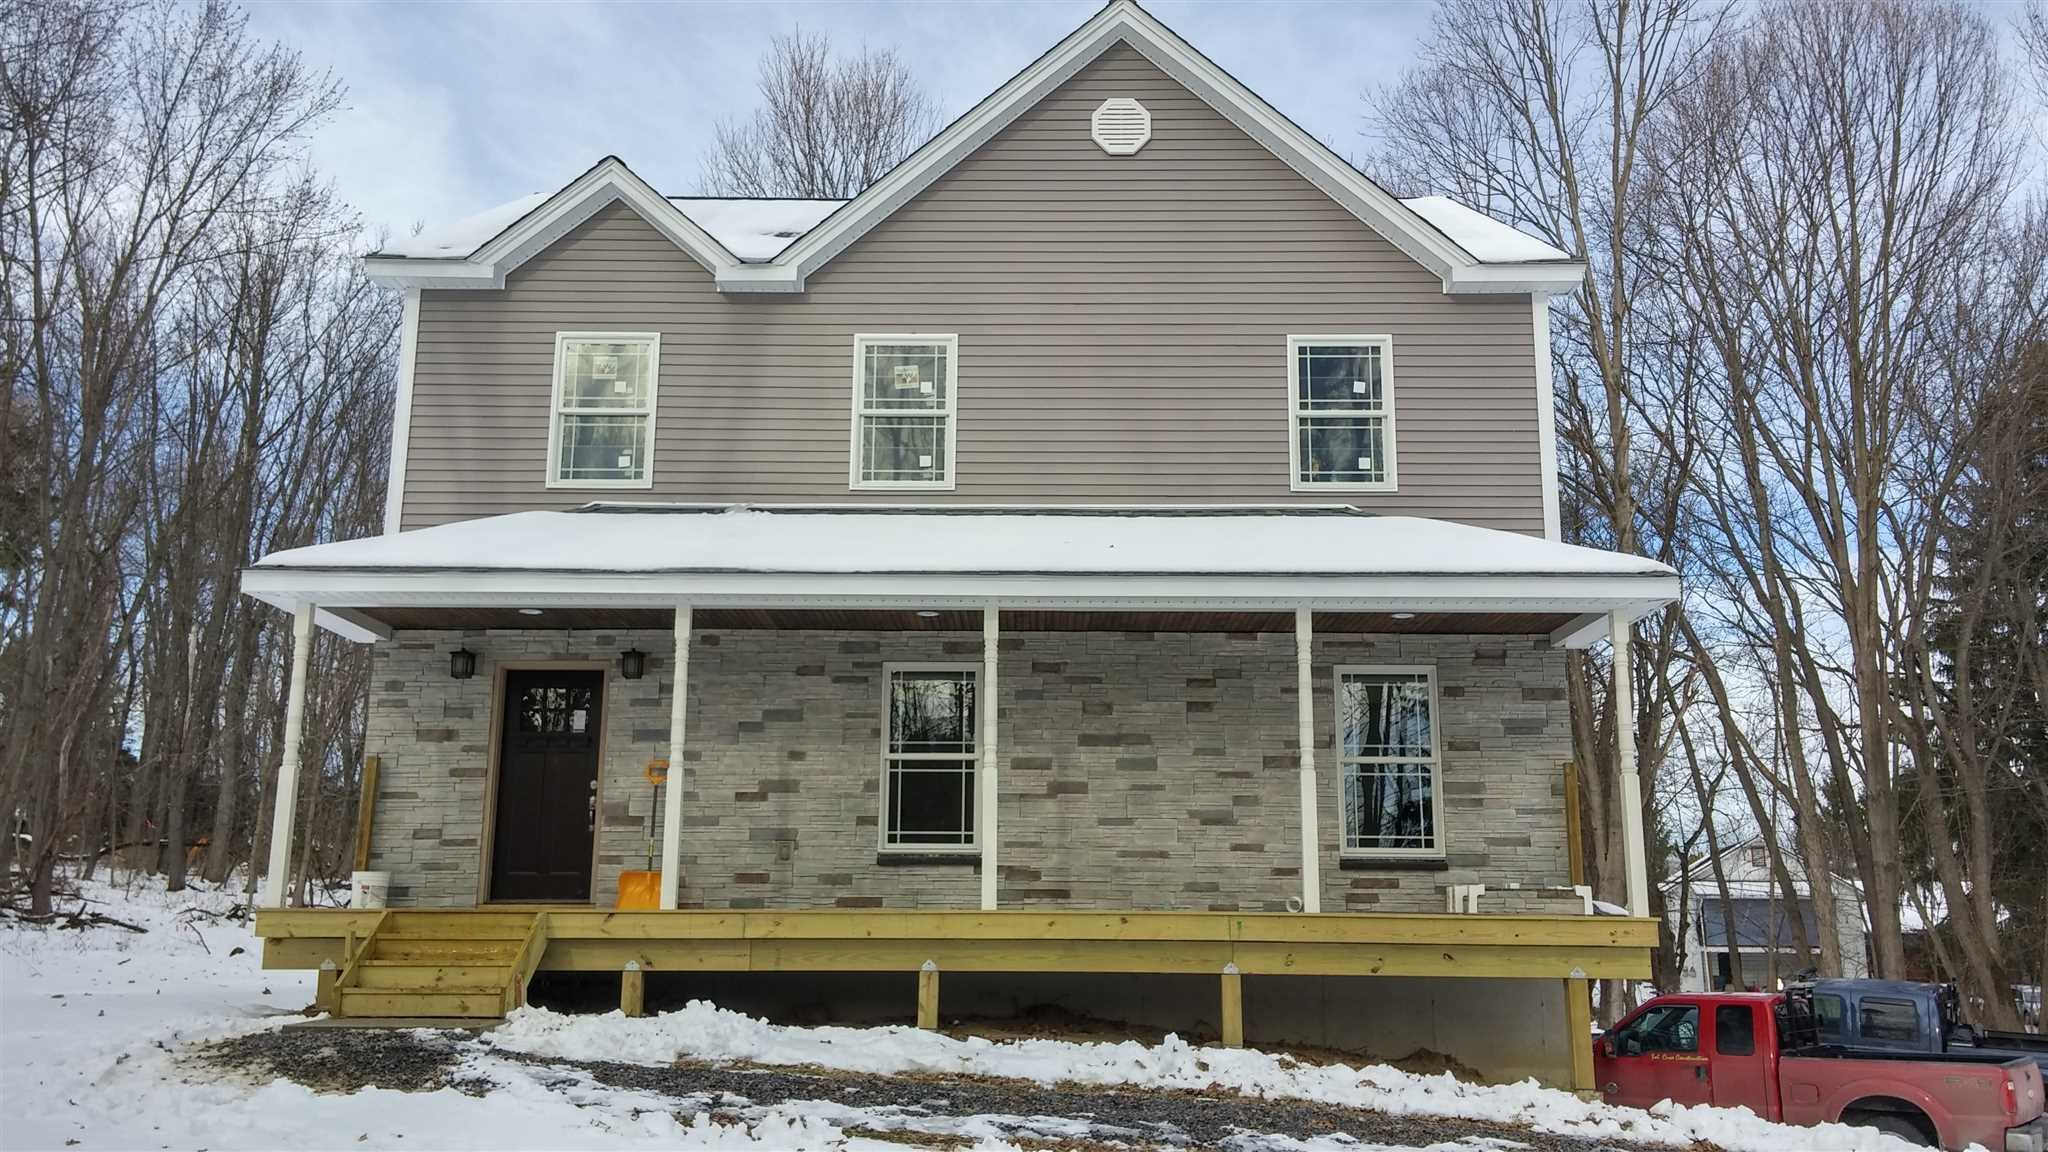 Single Family Home for Sale at 135 CHAPEL HILL ROAD 135 CHAPEL HILL ROAD Highland, New York 12528 United States